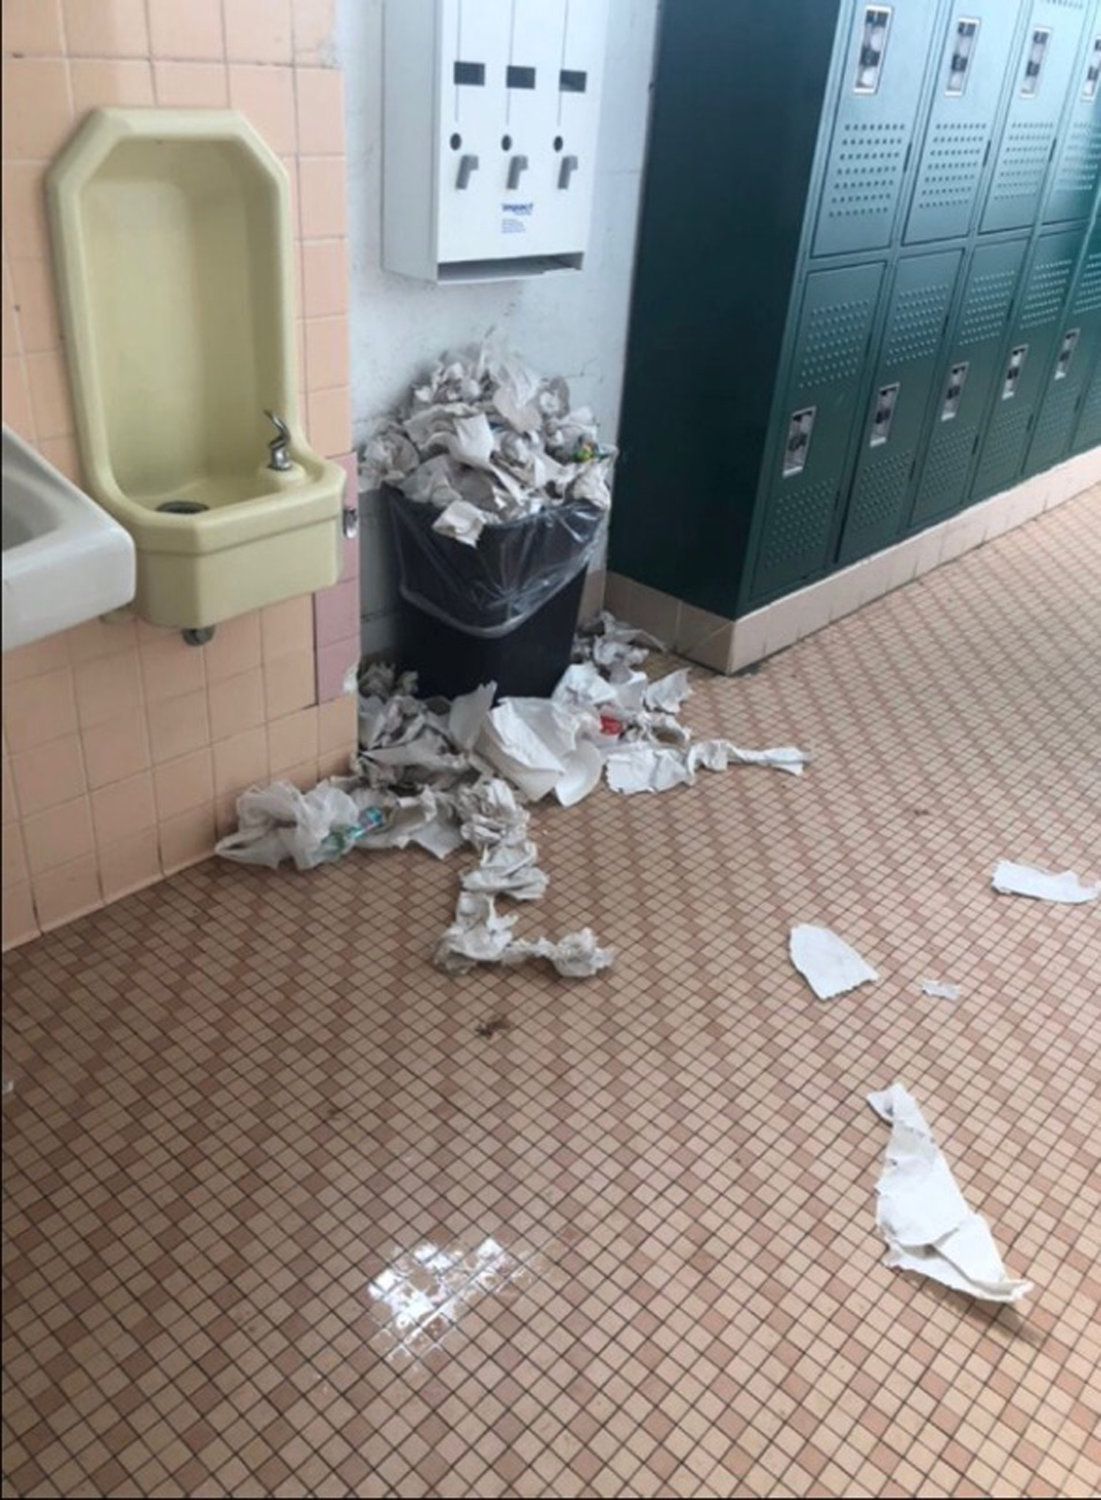 In response to complaints about overflowing garbage, Central High School District administrators provided North High School with larger garbage bins.